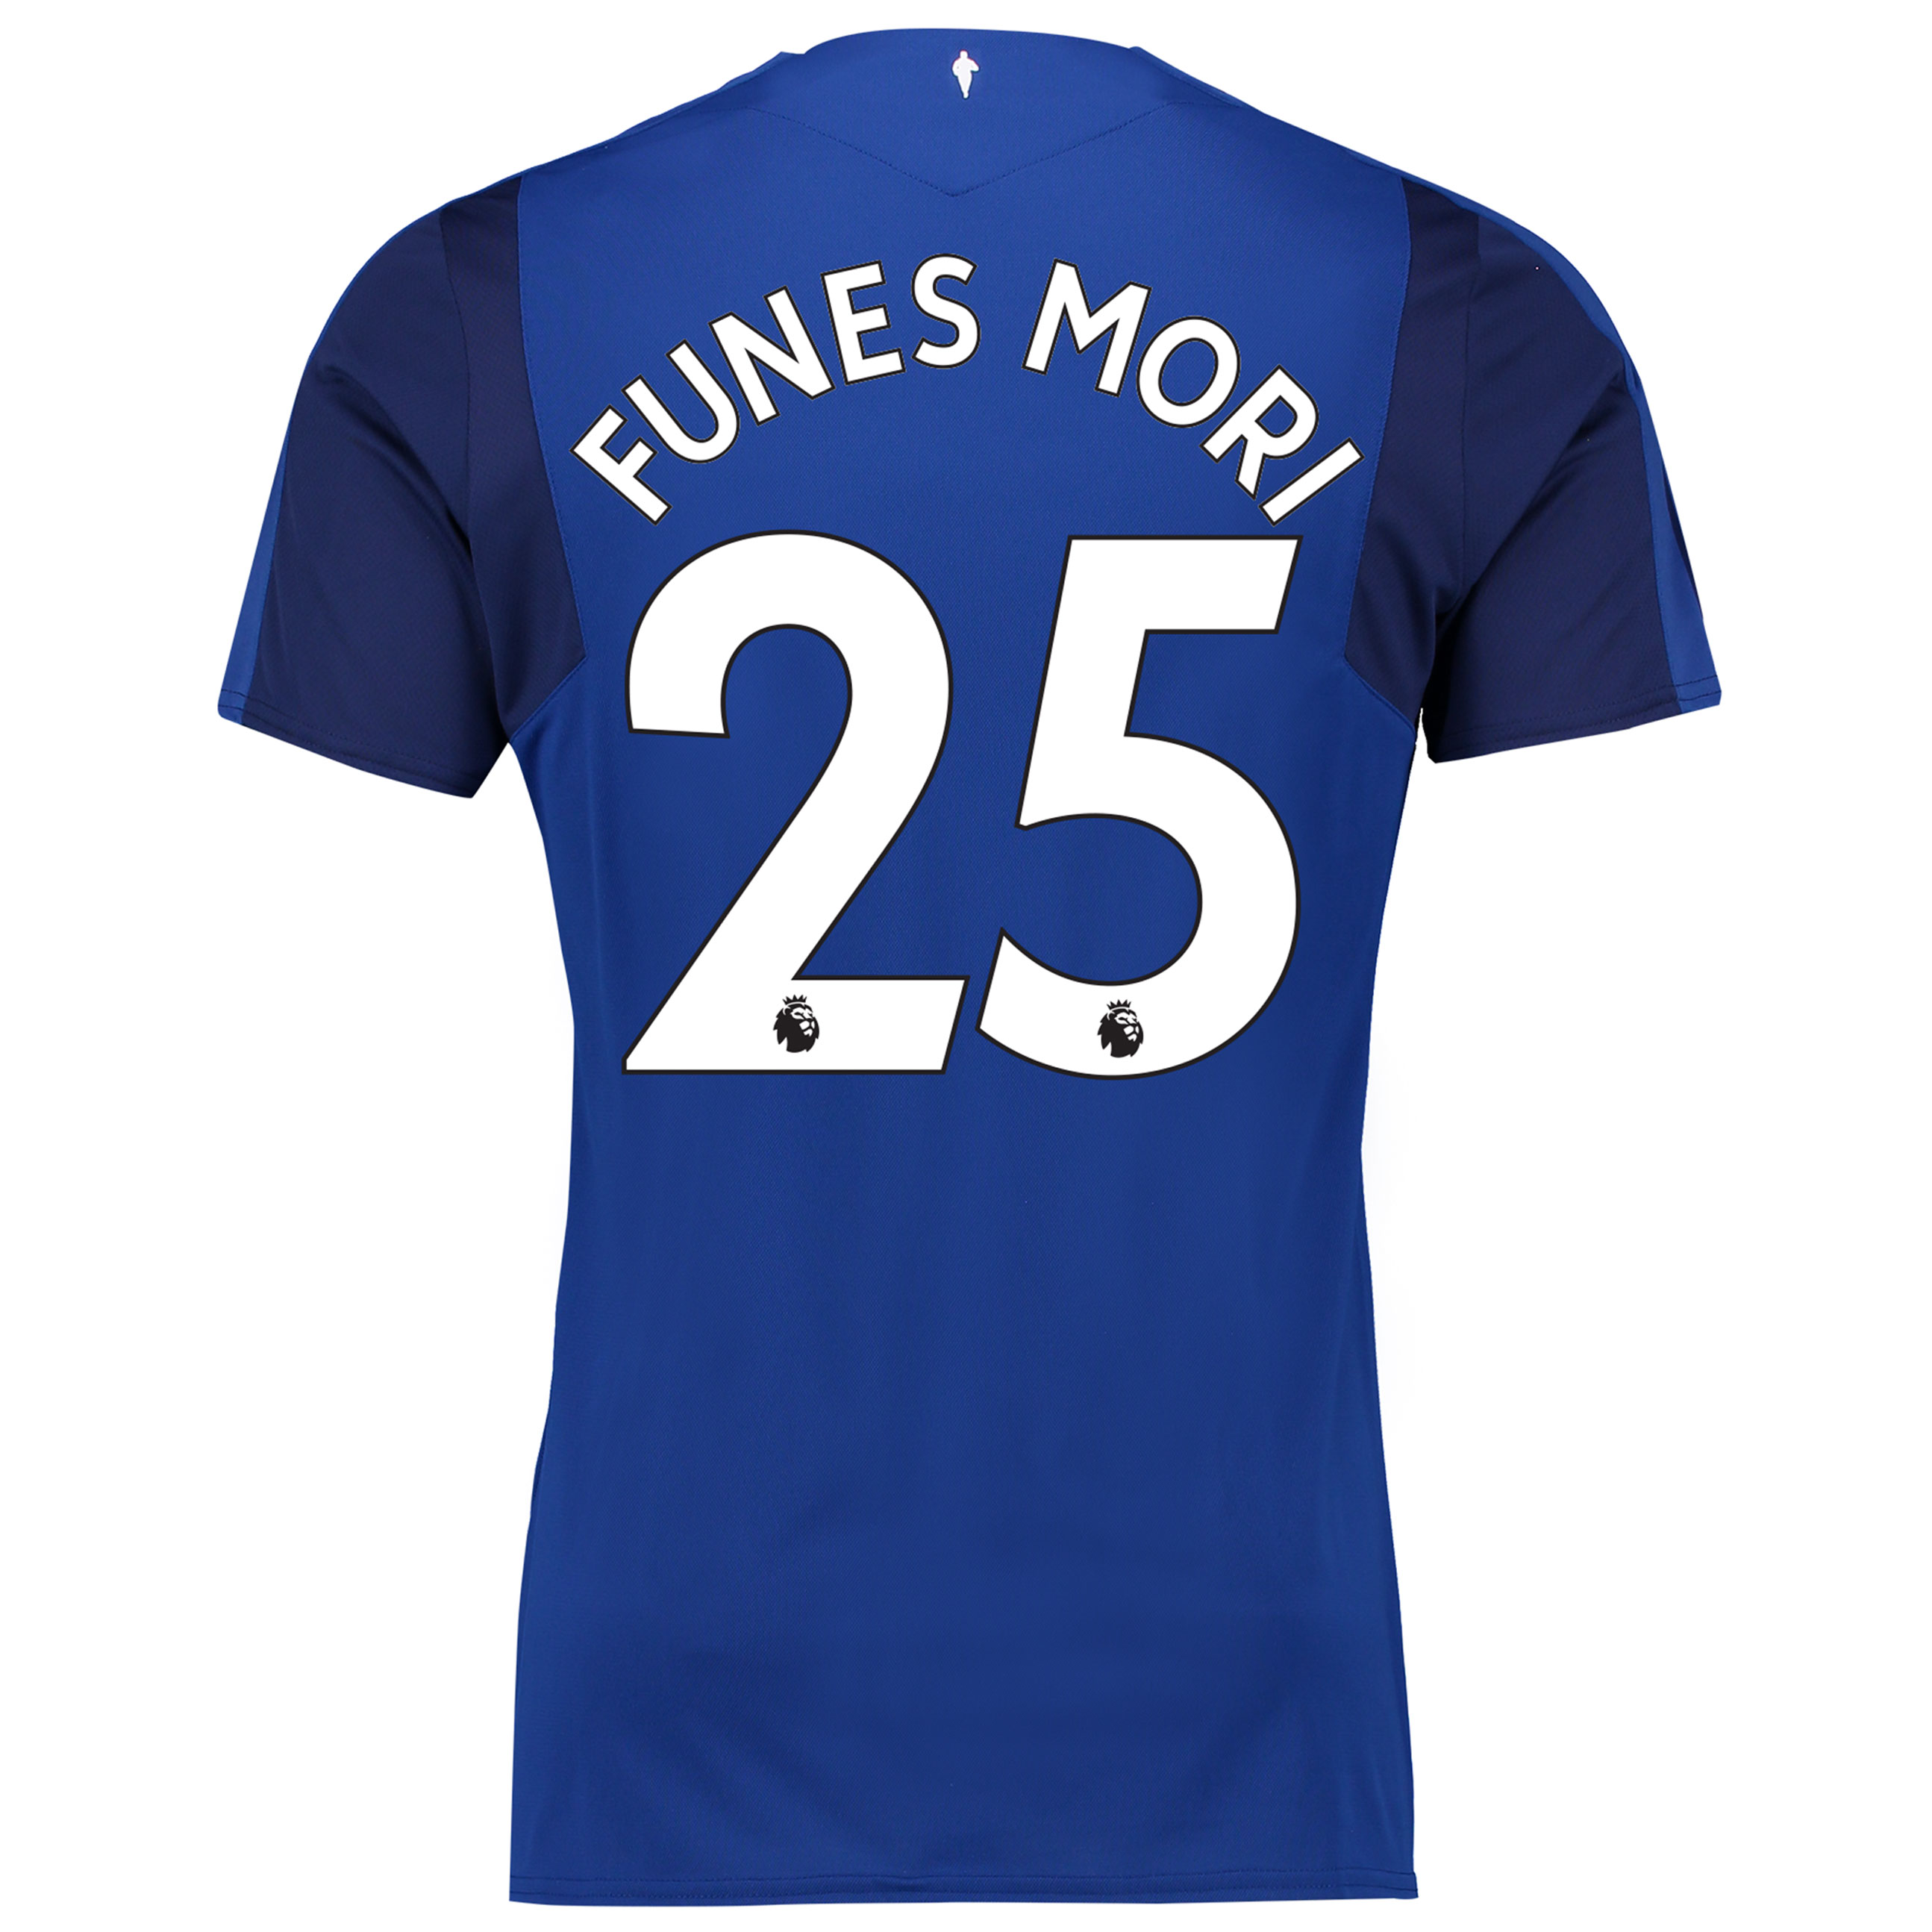 Everton Home Shirt 2017/18 with Funes Mori 25 printing